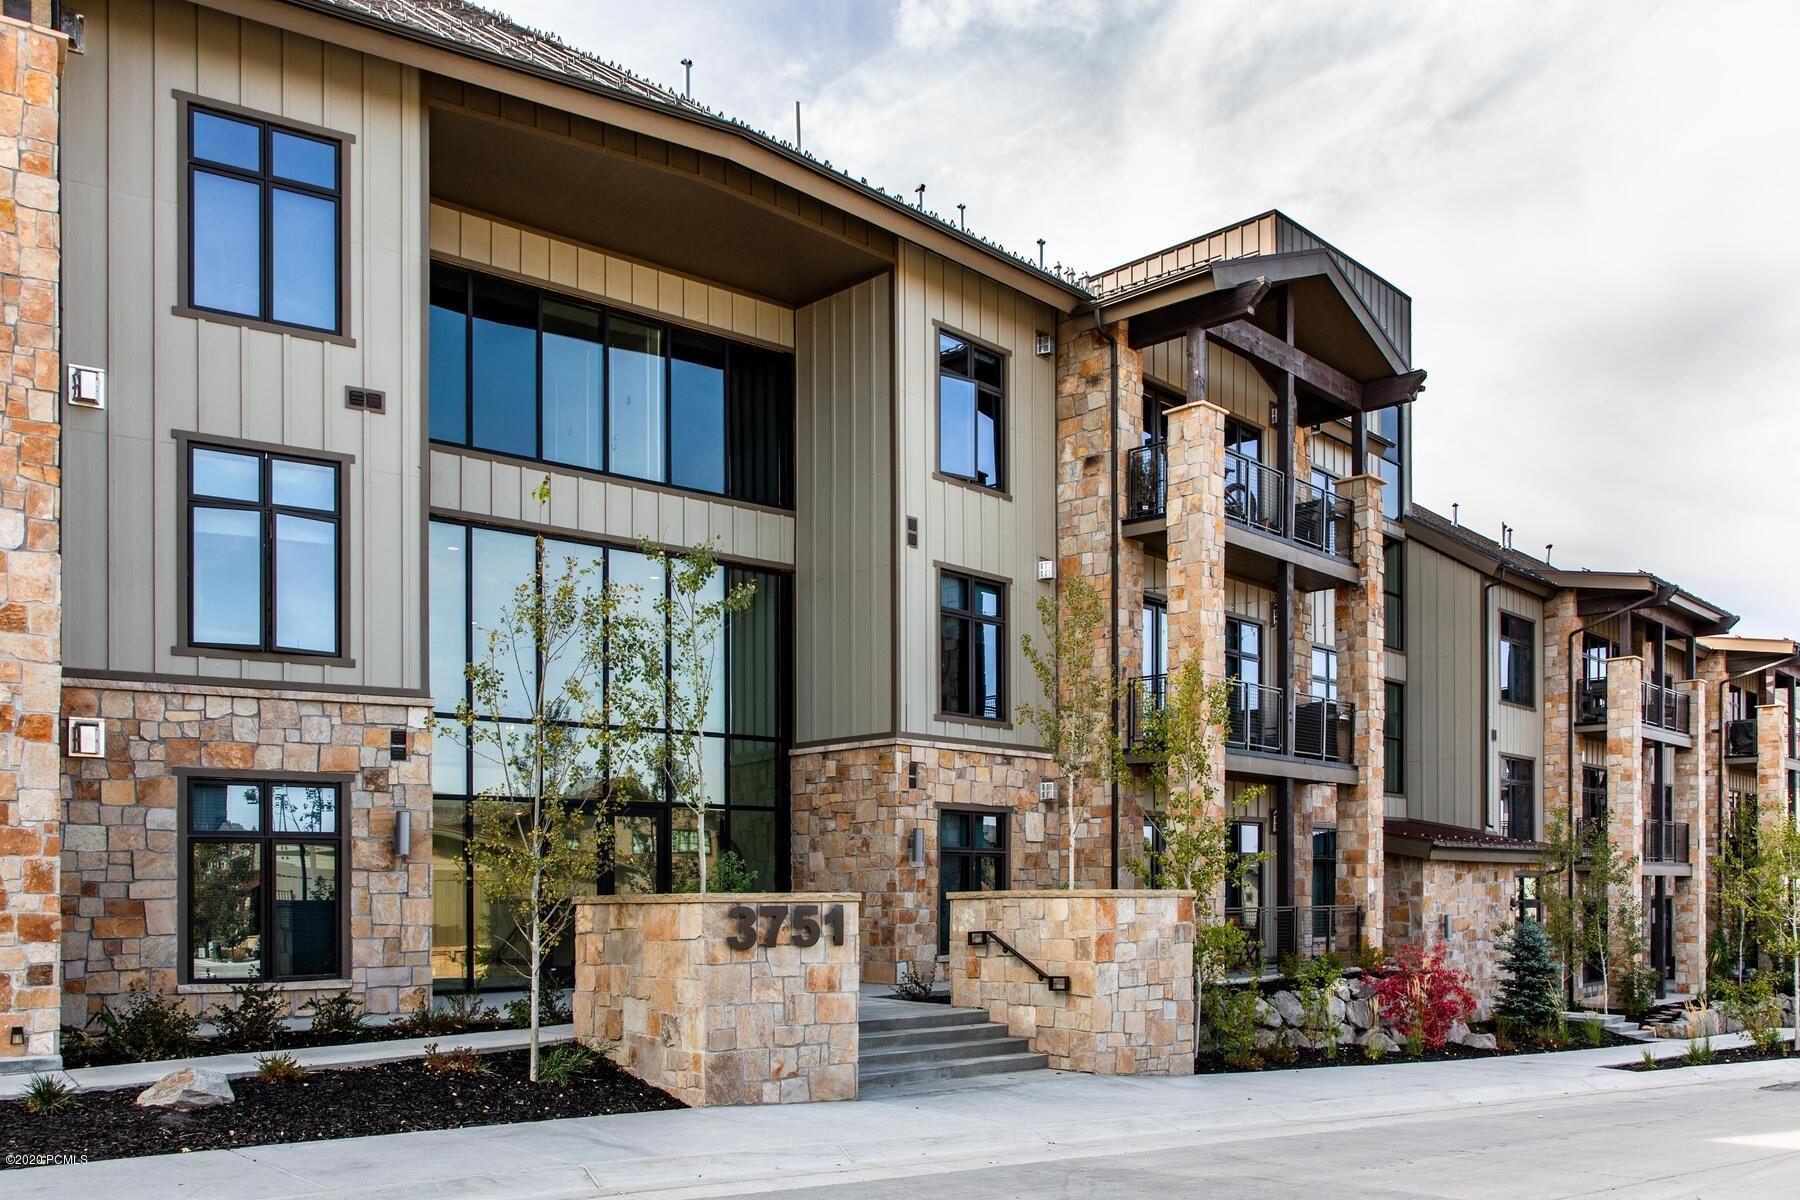 3751 Blackstone Drive, Park City, Utah 84098, 2 Bedrooms Bedrooms, ,3 BathroomsBathrooms,Condominium,For Sale,Blackstone,12002769